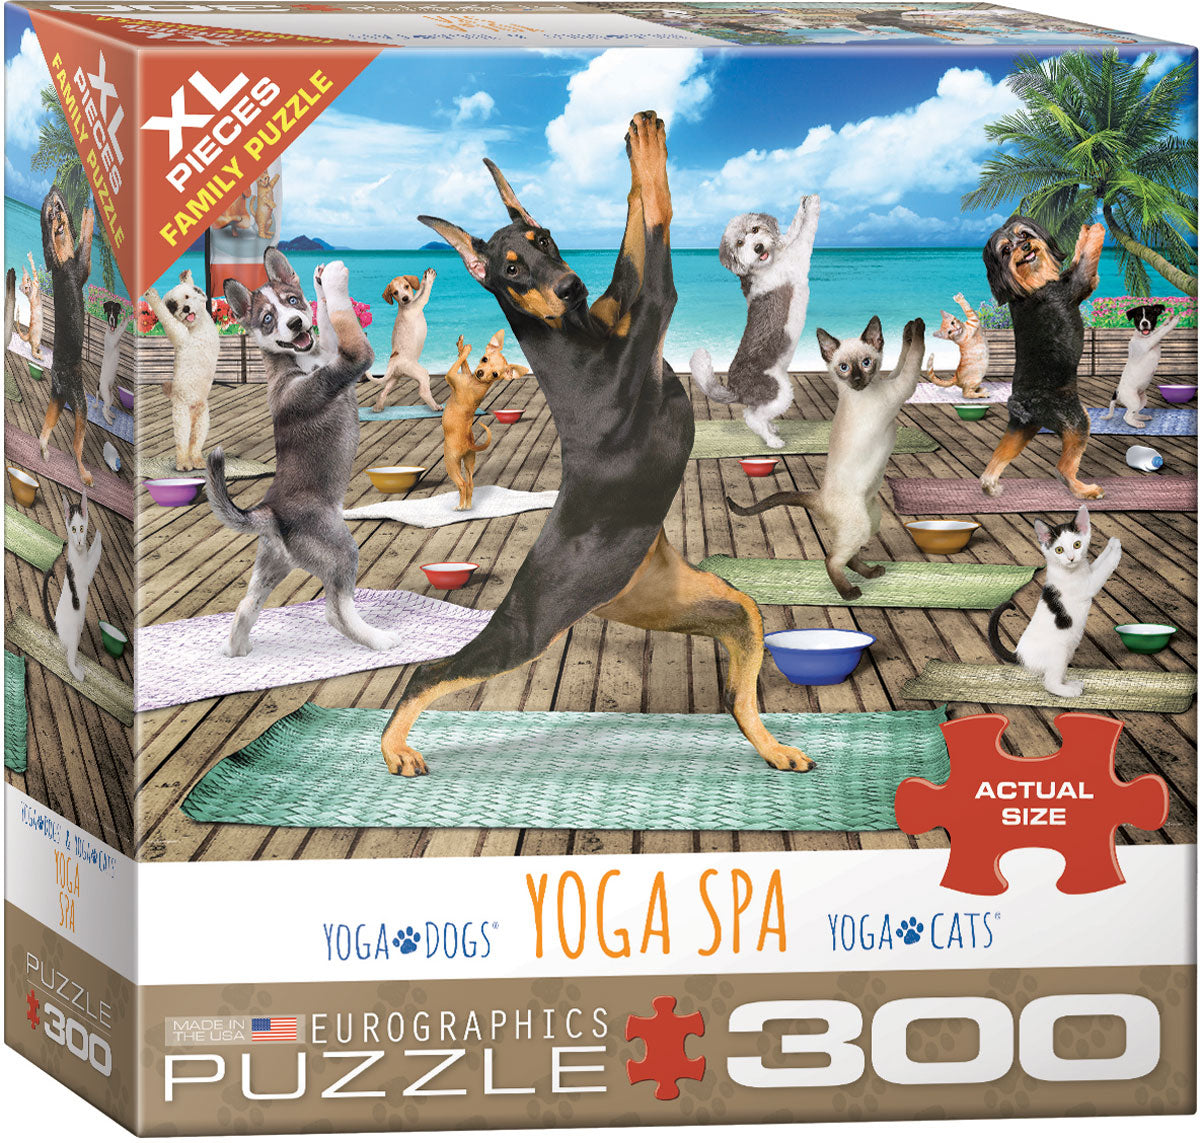 Yoga Spa 300 Piece Puzzle - Quick Ship - Puzzlicious.com